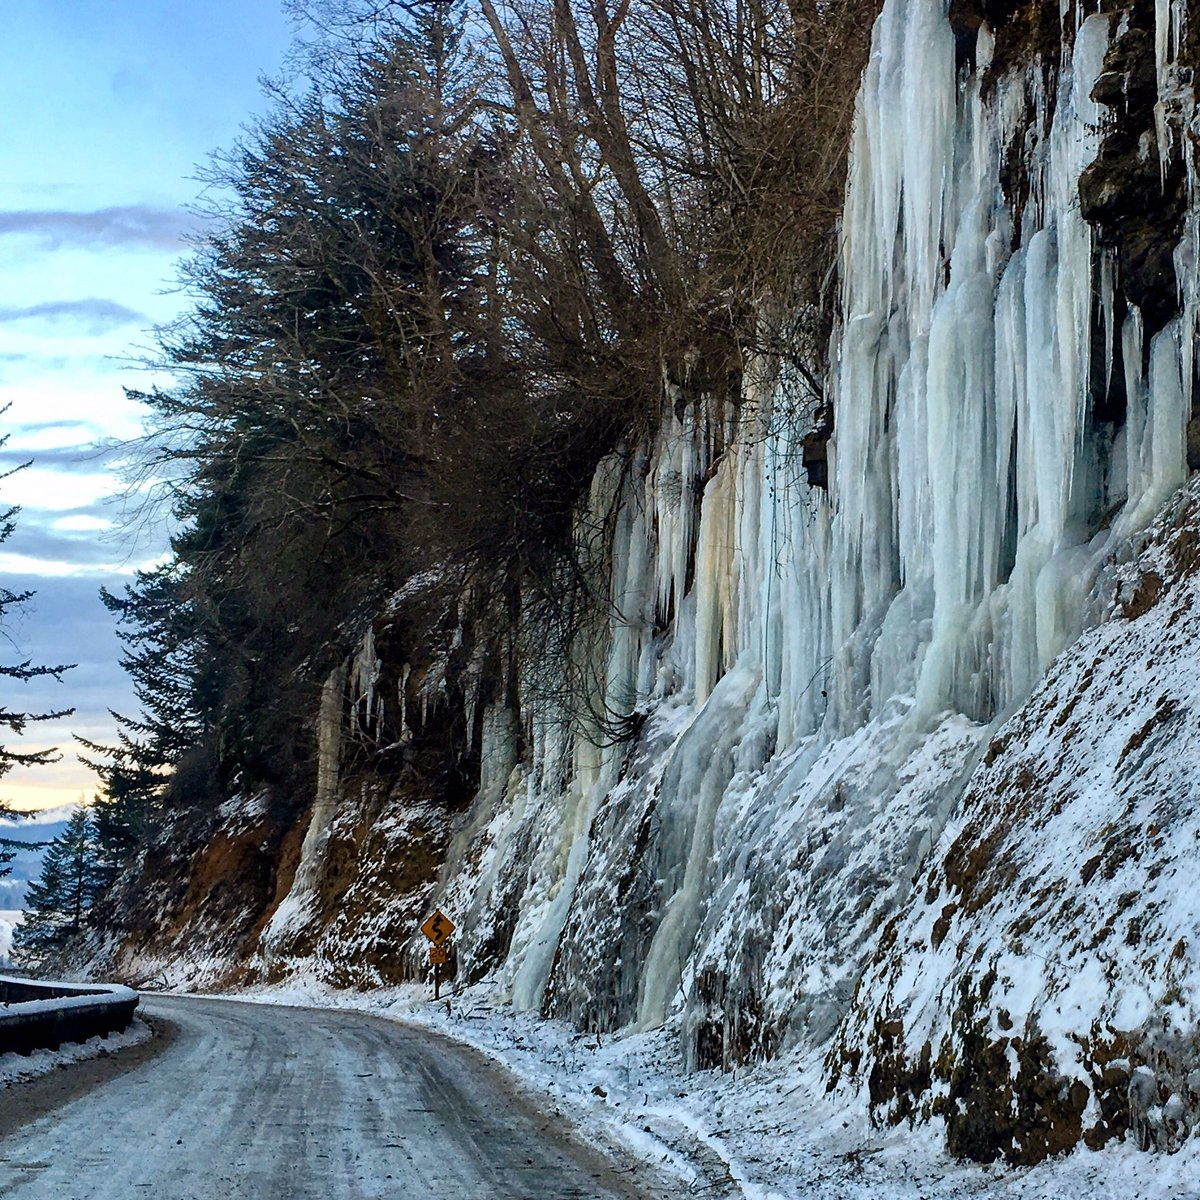 WOW... check out the amazing wall of icicles on this canyon wall in the Gorge near Crown Point. Dangerous but beautiful! #LiveOnK2 #pdxtst <br>http://pic.twitter.com/RVECXIuGrf